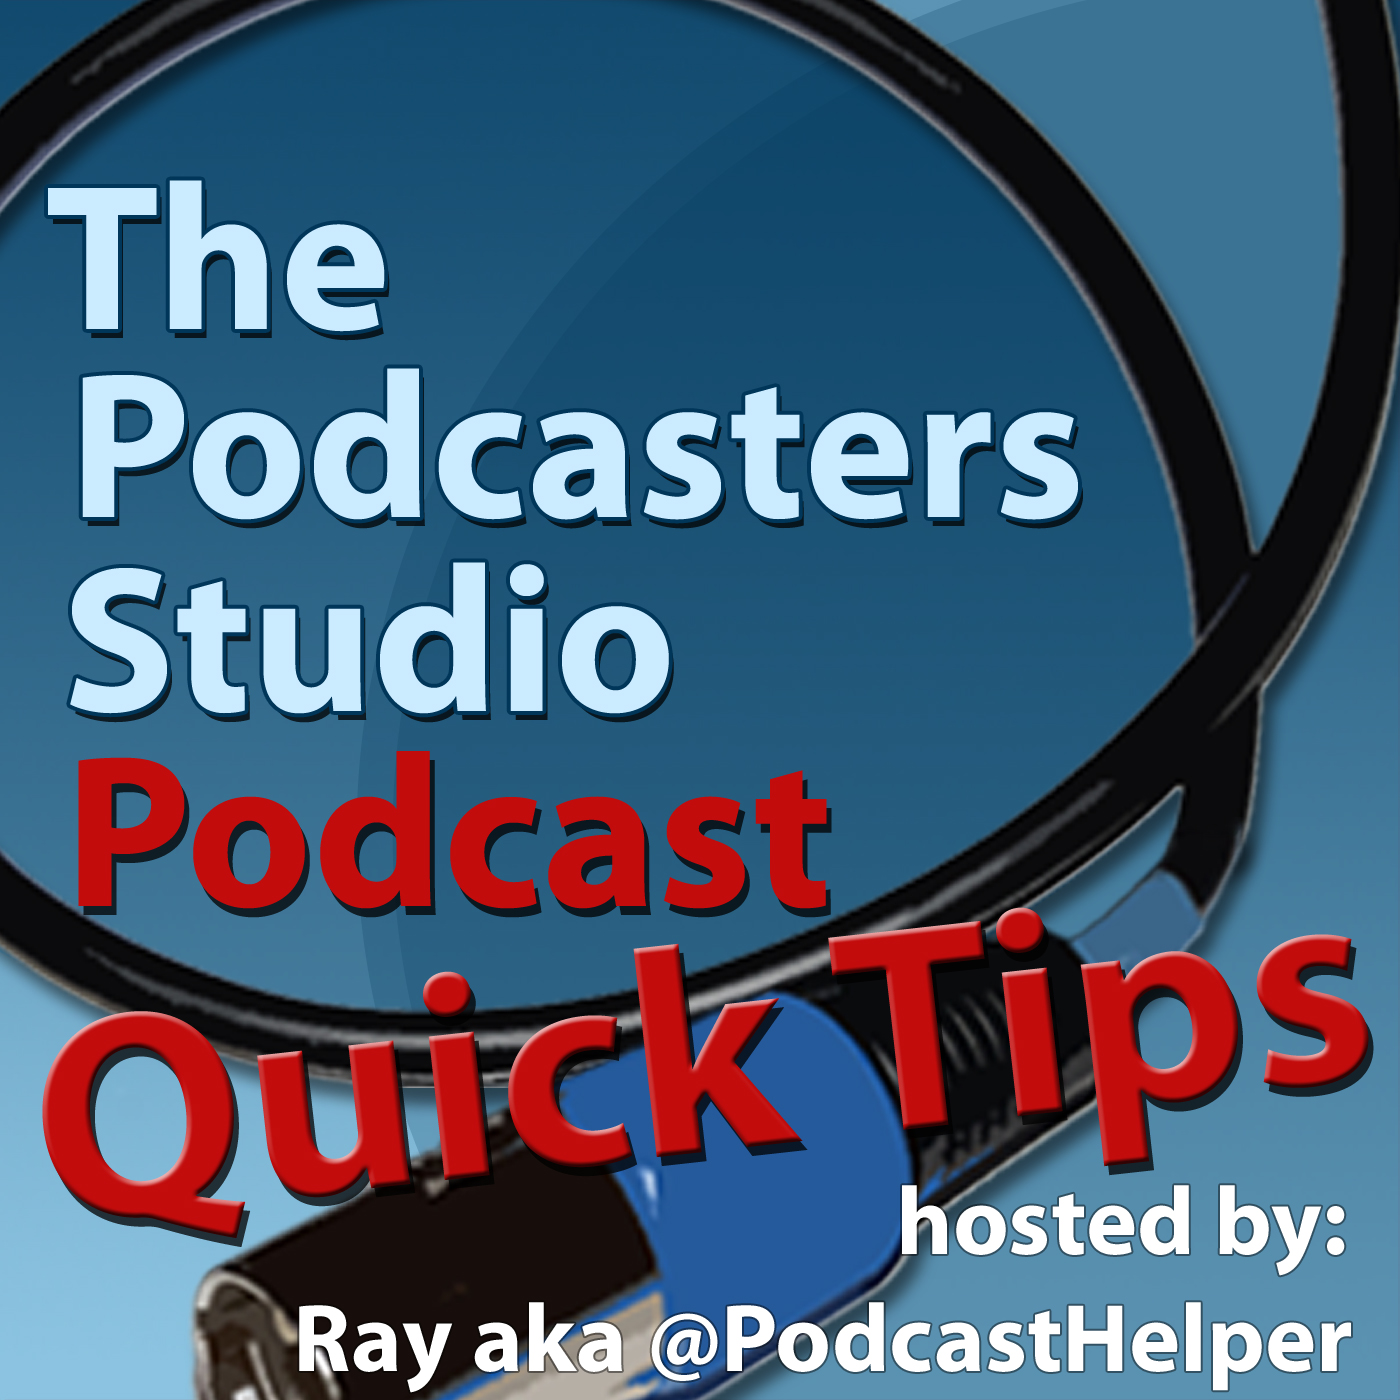 Podcast Quick Tips - Learn how to podcast one tip at a time